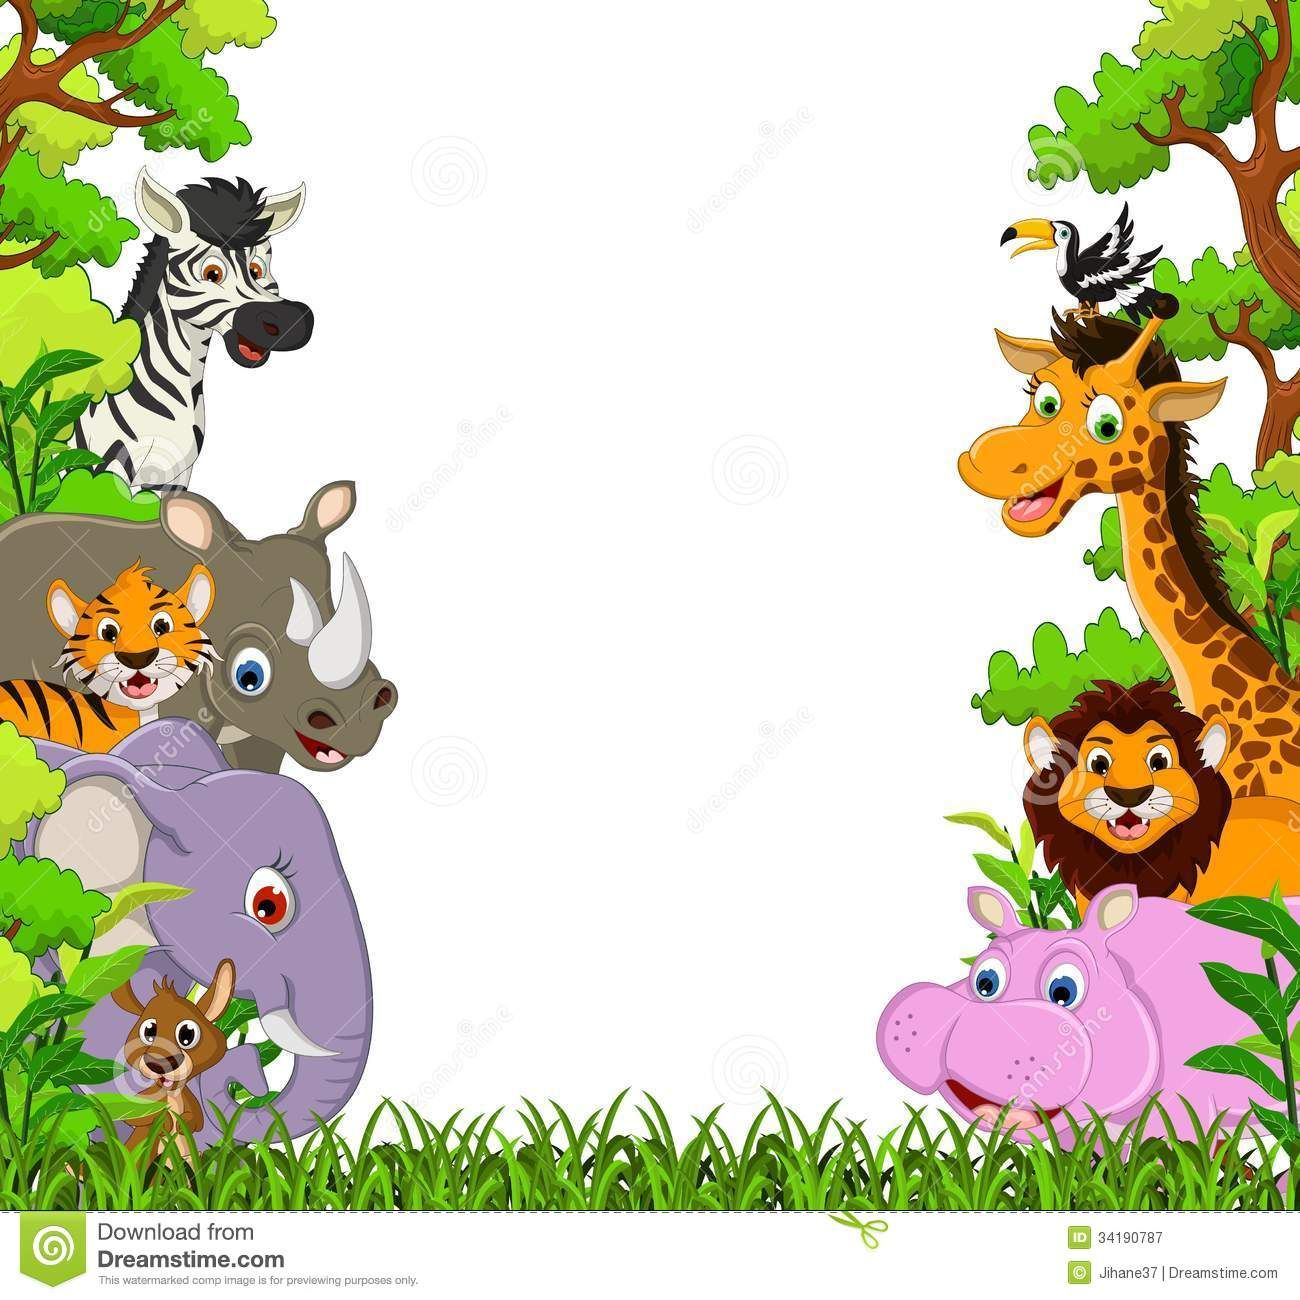 Image for Free Jungle Animal Clipart Cartoon Images Cute Animal .